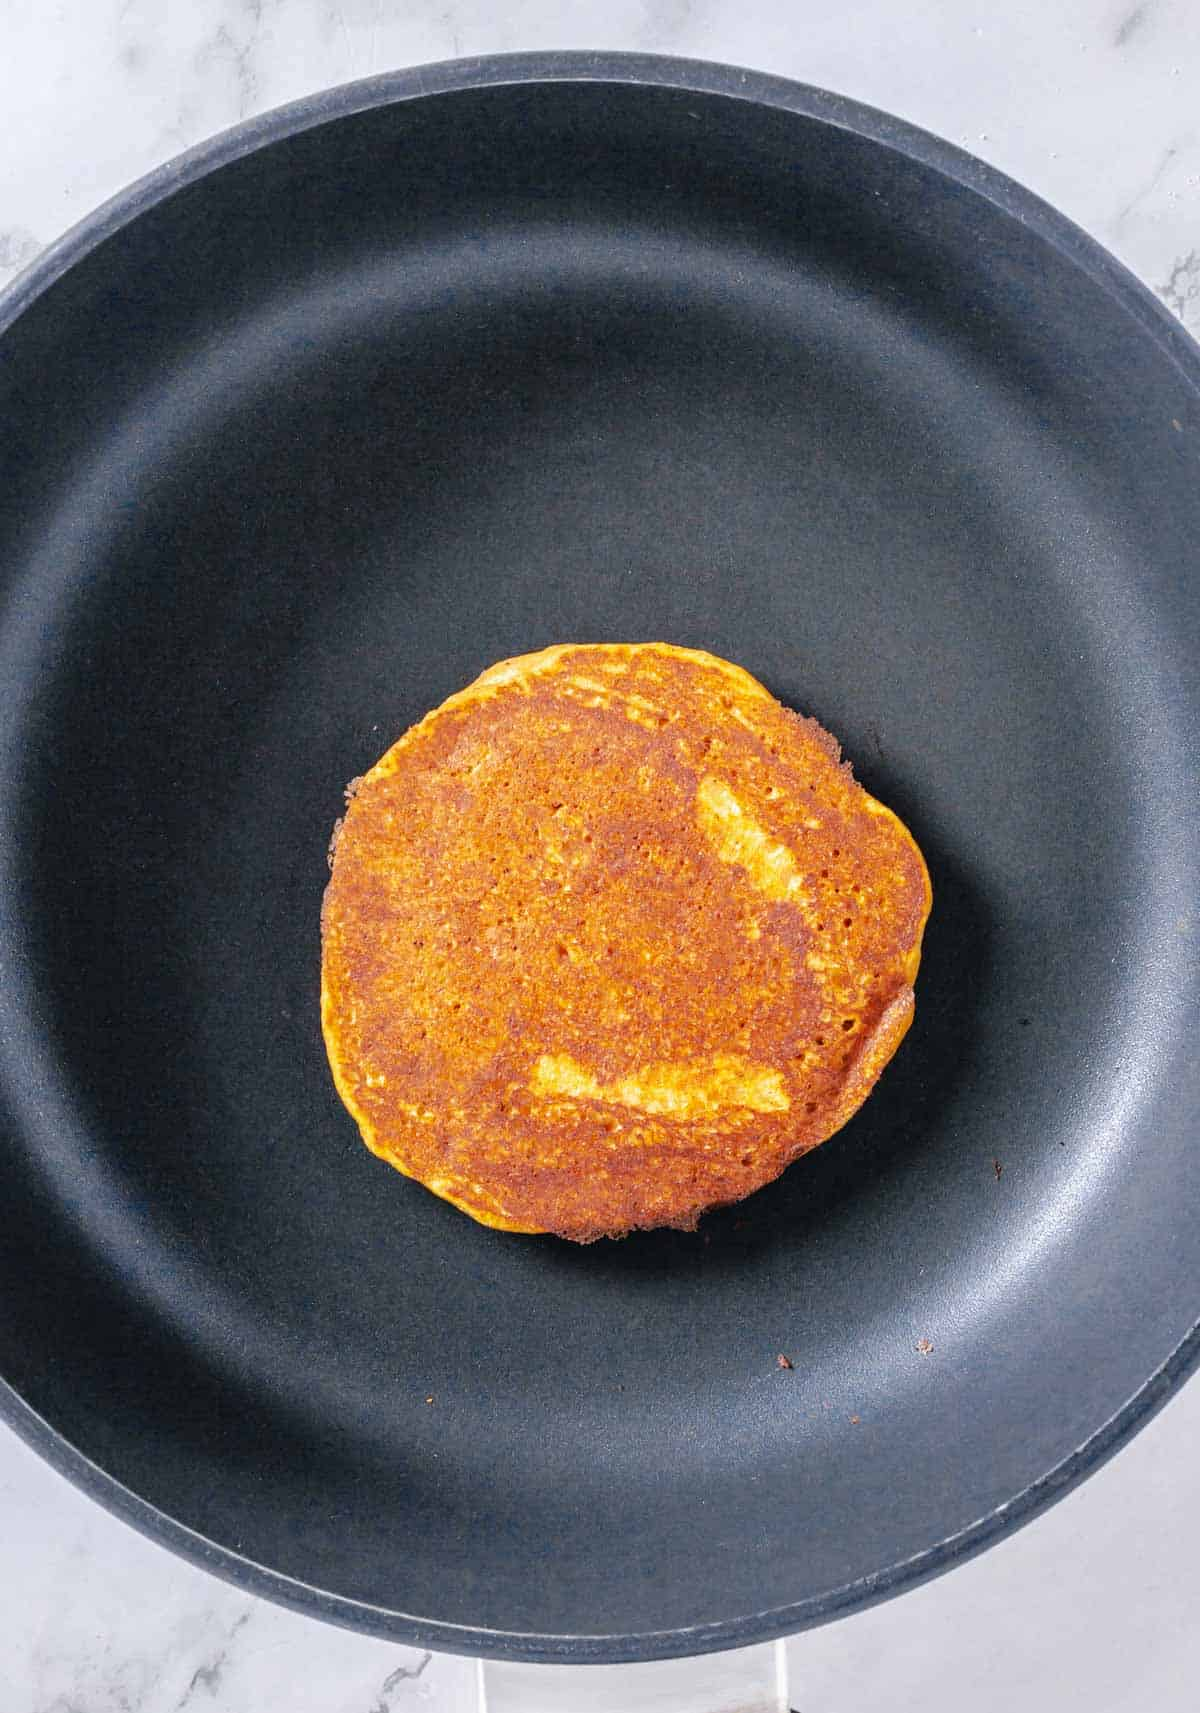 cooked pancake in a skillet